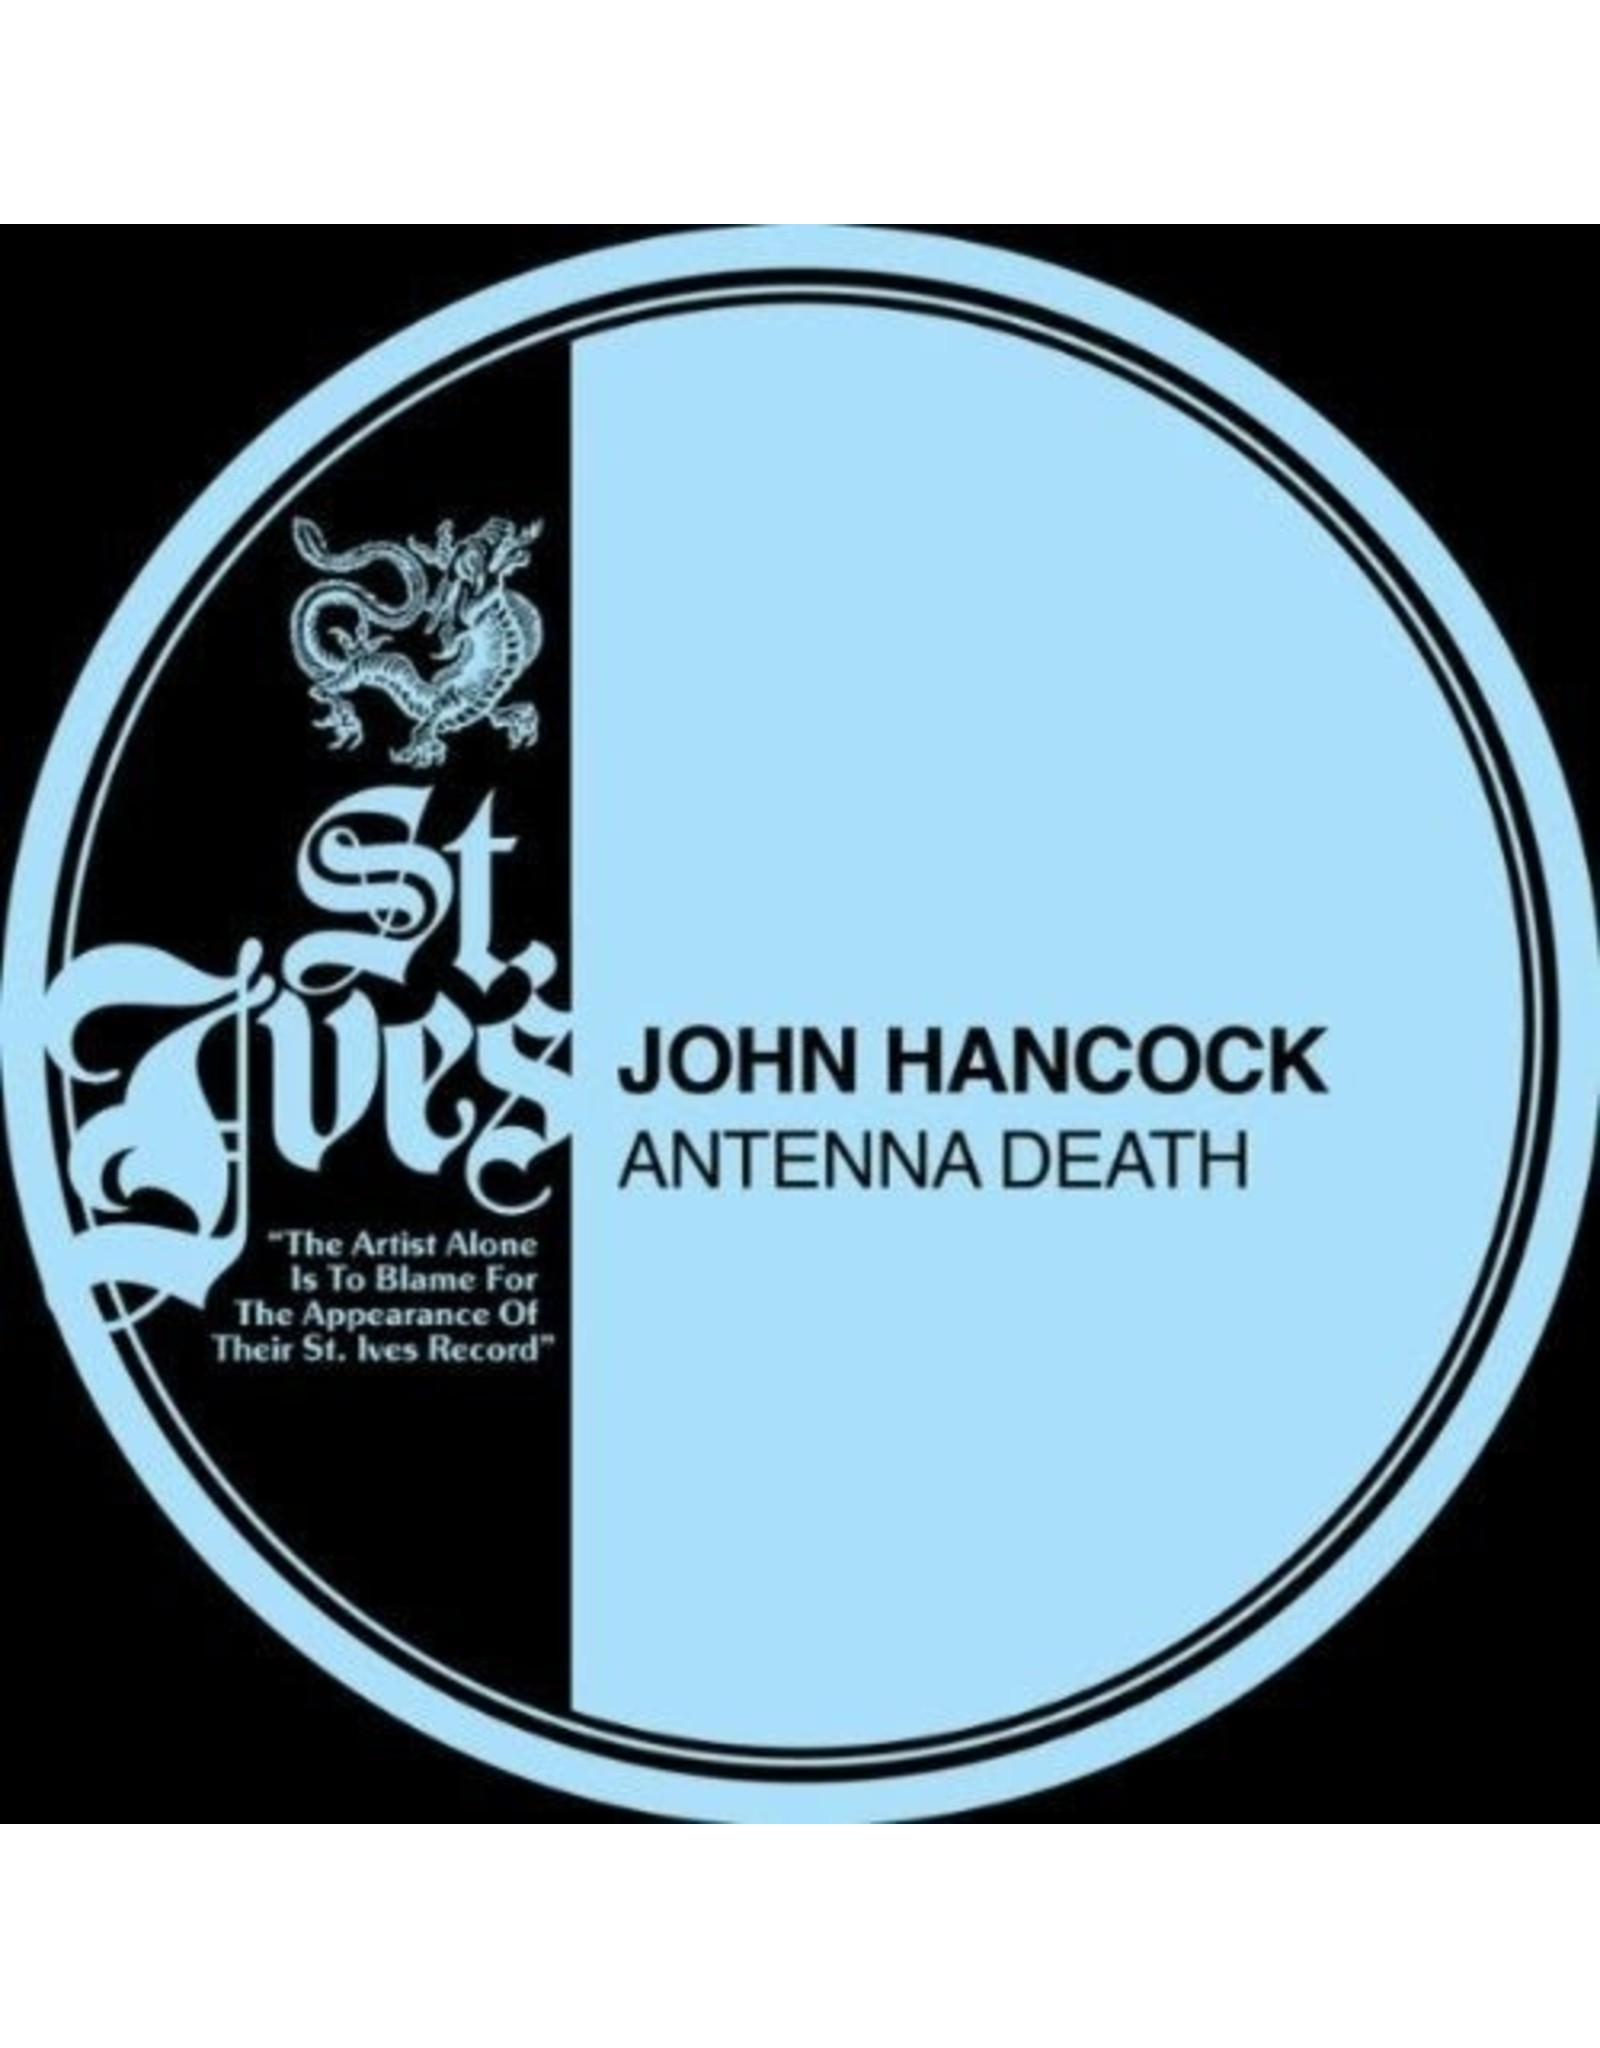 New Vinyl John Hancock - Antenna Death LP